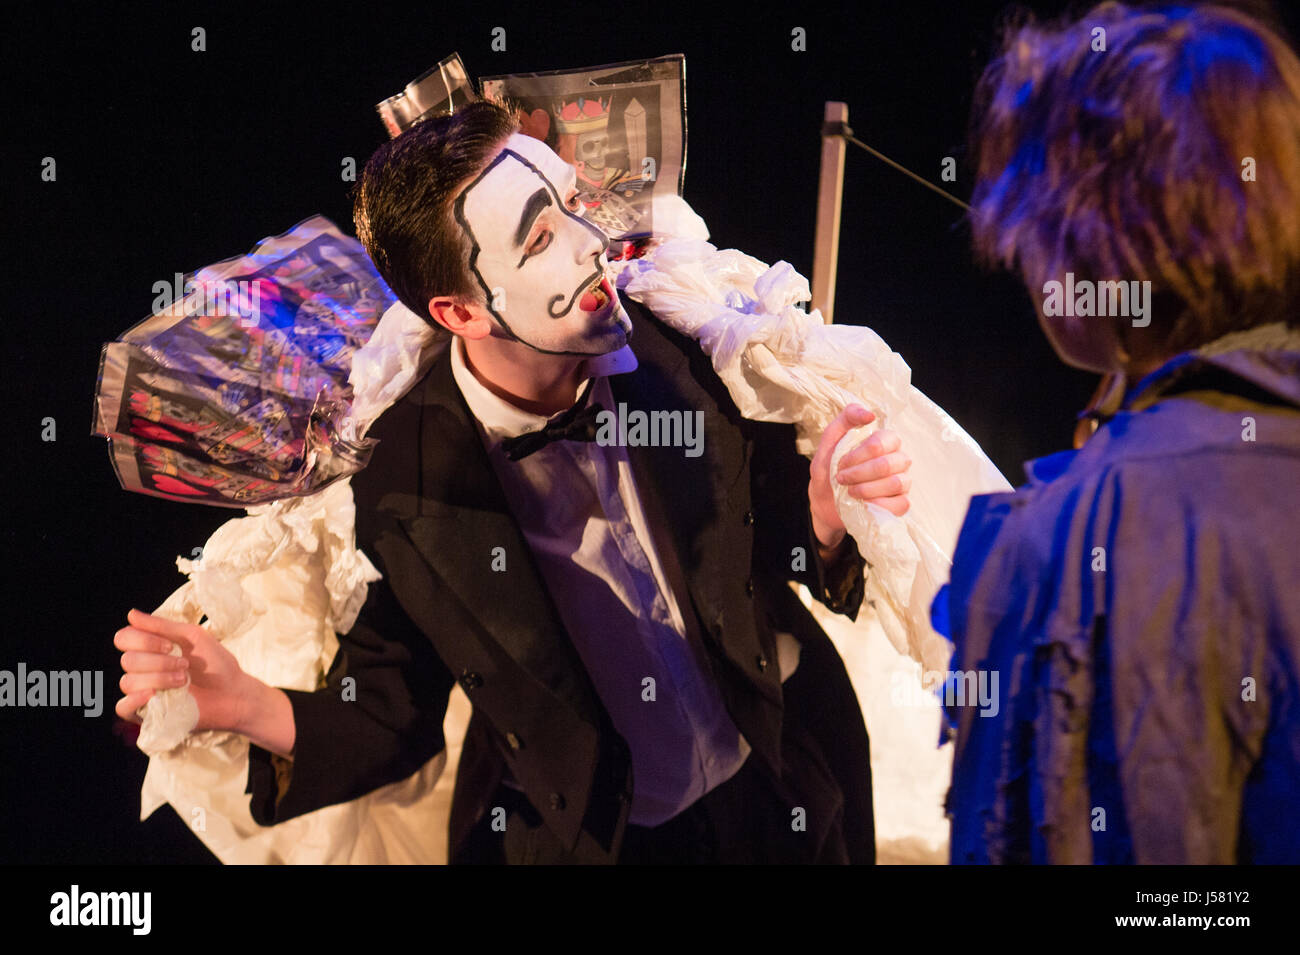 Theater Education in the UK: Undergraduate students performing in William Shakespeare's classic play The Tempest - Stock Image